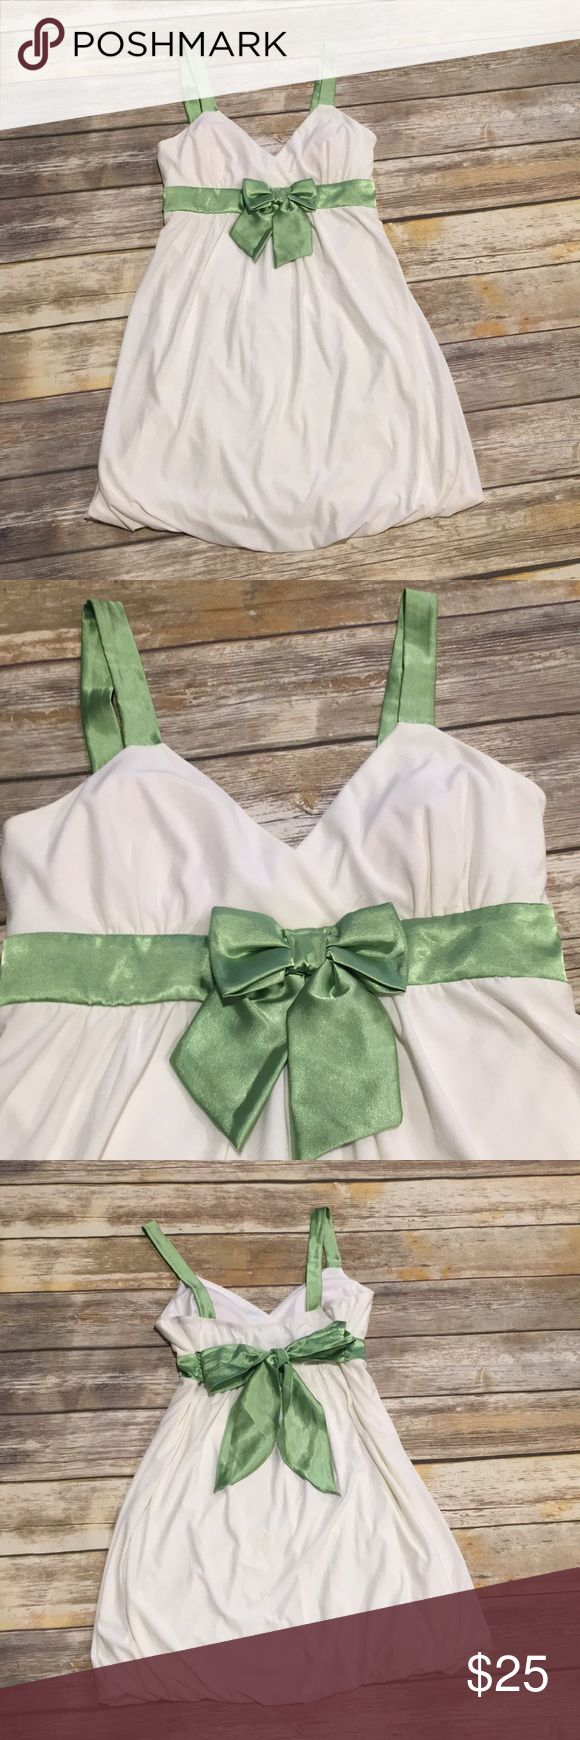 White and green mini dress White and green mini dress,92% polyester, 8% spandex, satin bow front tie bow in the back, satin strap, bunched bottom dress. Taboo Dresses Mini